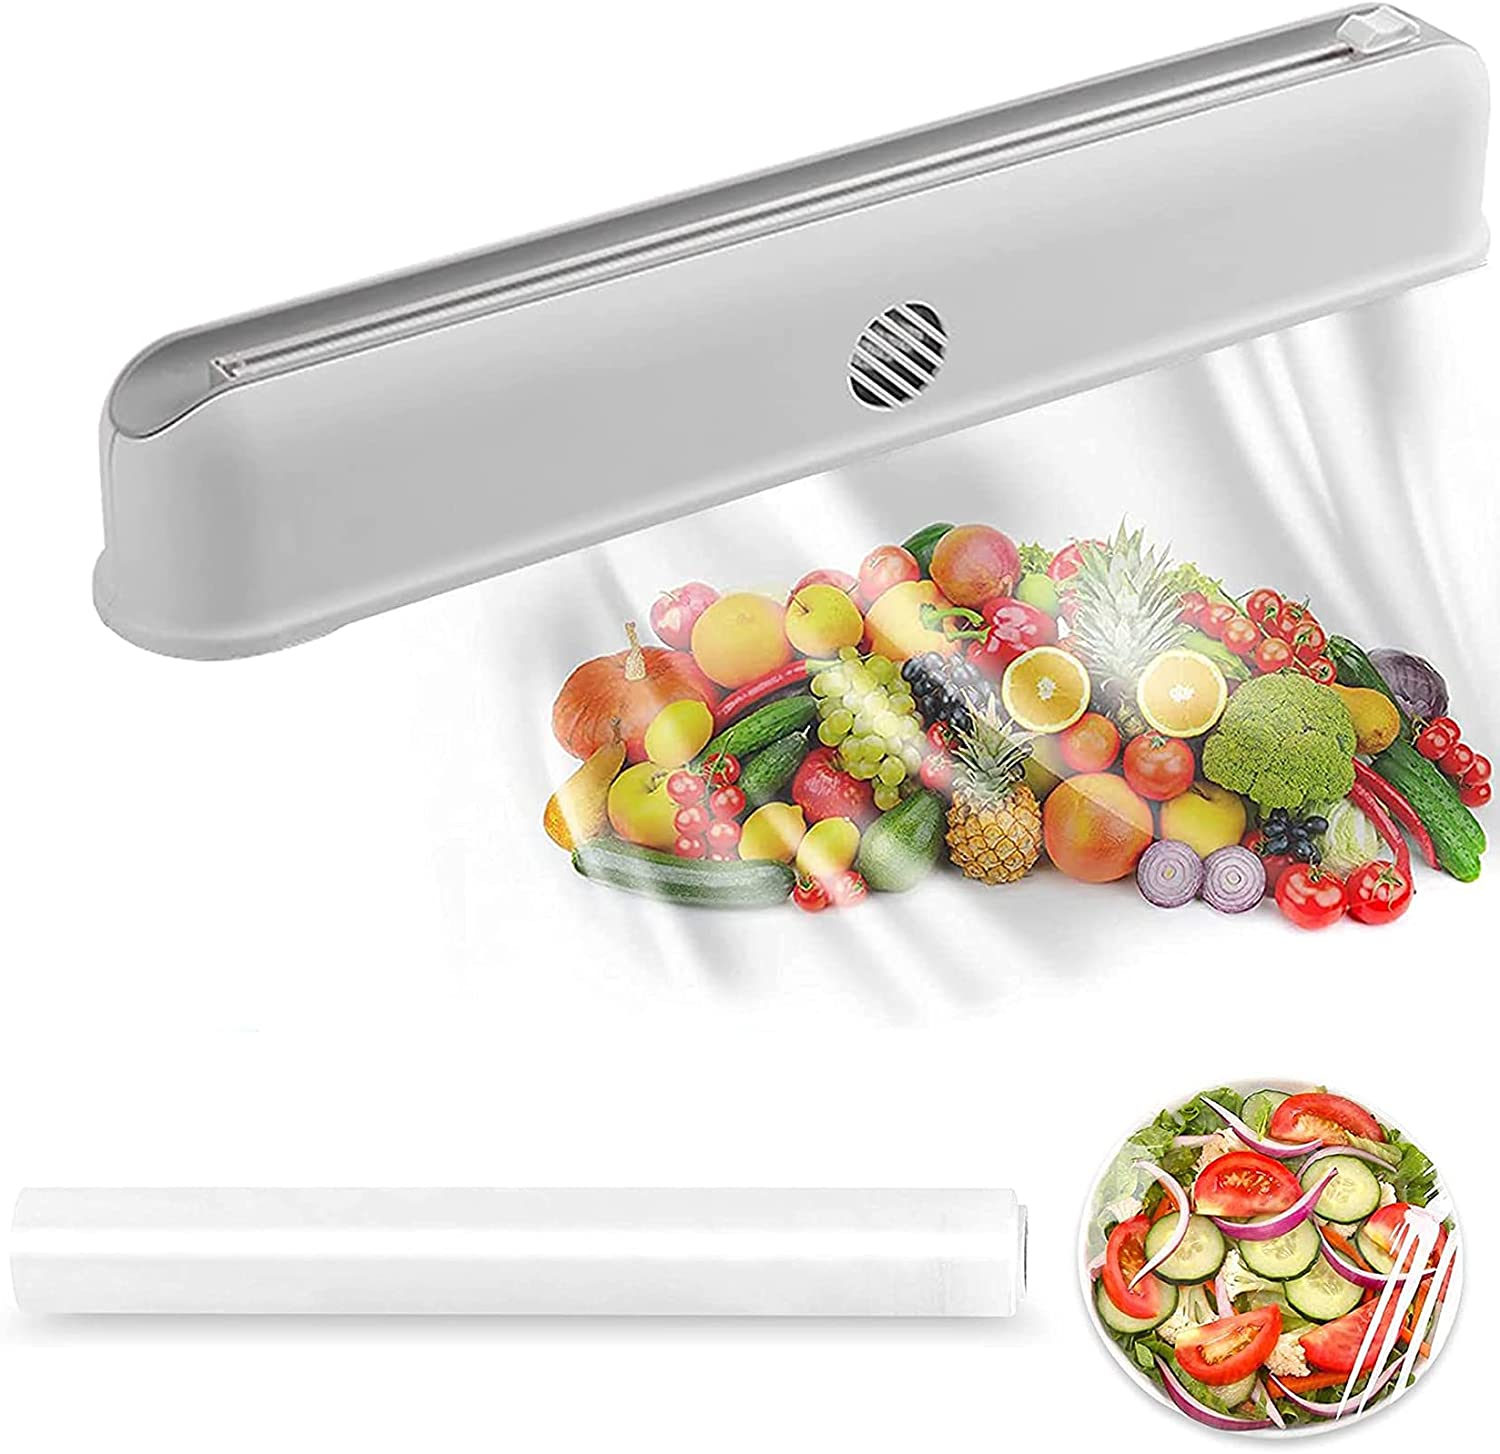 Plastic Wrap Dispenser with Slide Cutter Household Reusable Cling Film Dispenser with Magnet and Suction Cup Fixed,Wall Mount Tin/Aluminum Foil Dispenser,1 Roll Plastic Food Wrap Included…